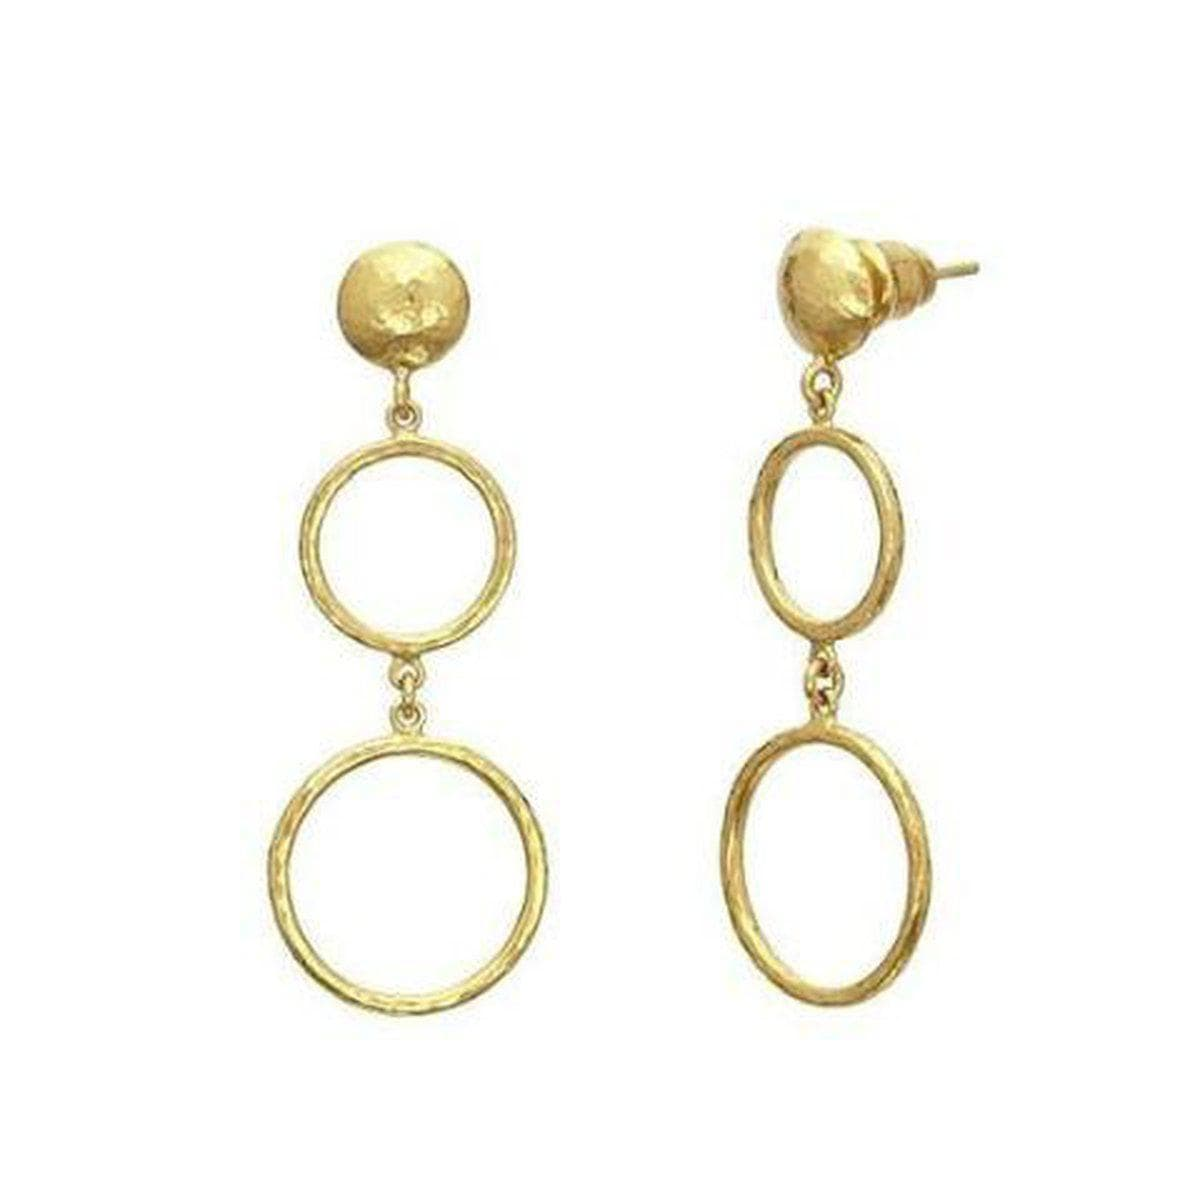 Delicate Gold Earrings - LTE-GPL-14RD-18RD-GURHAN-Renee Taylor Gallery